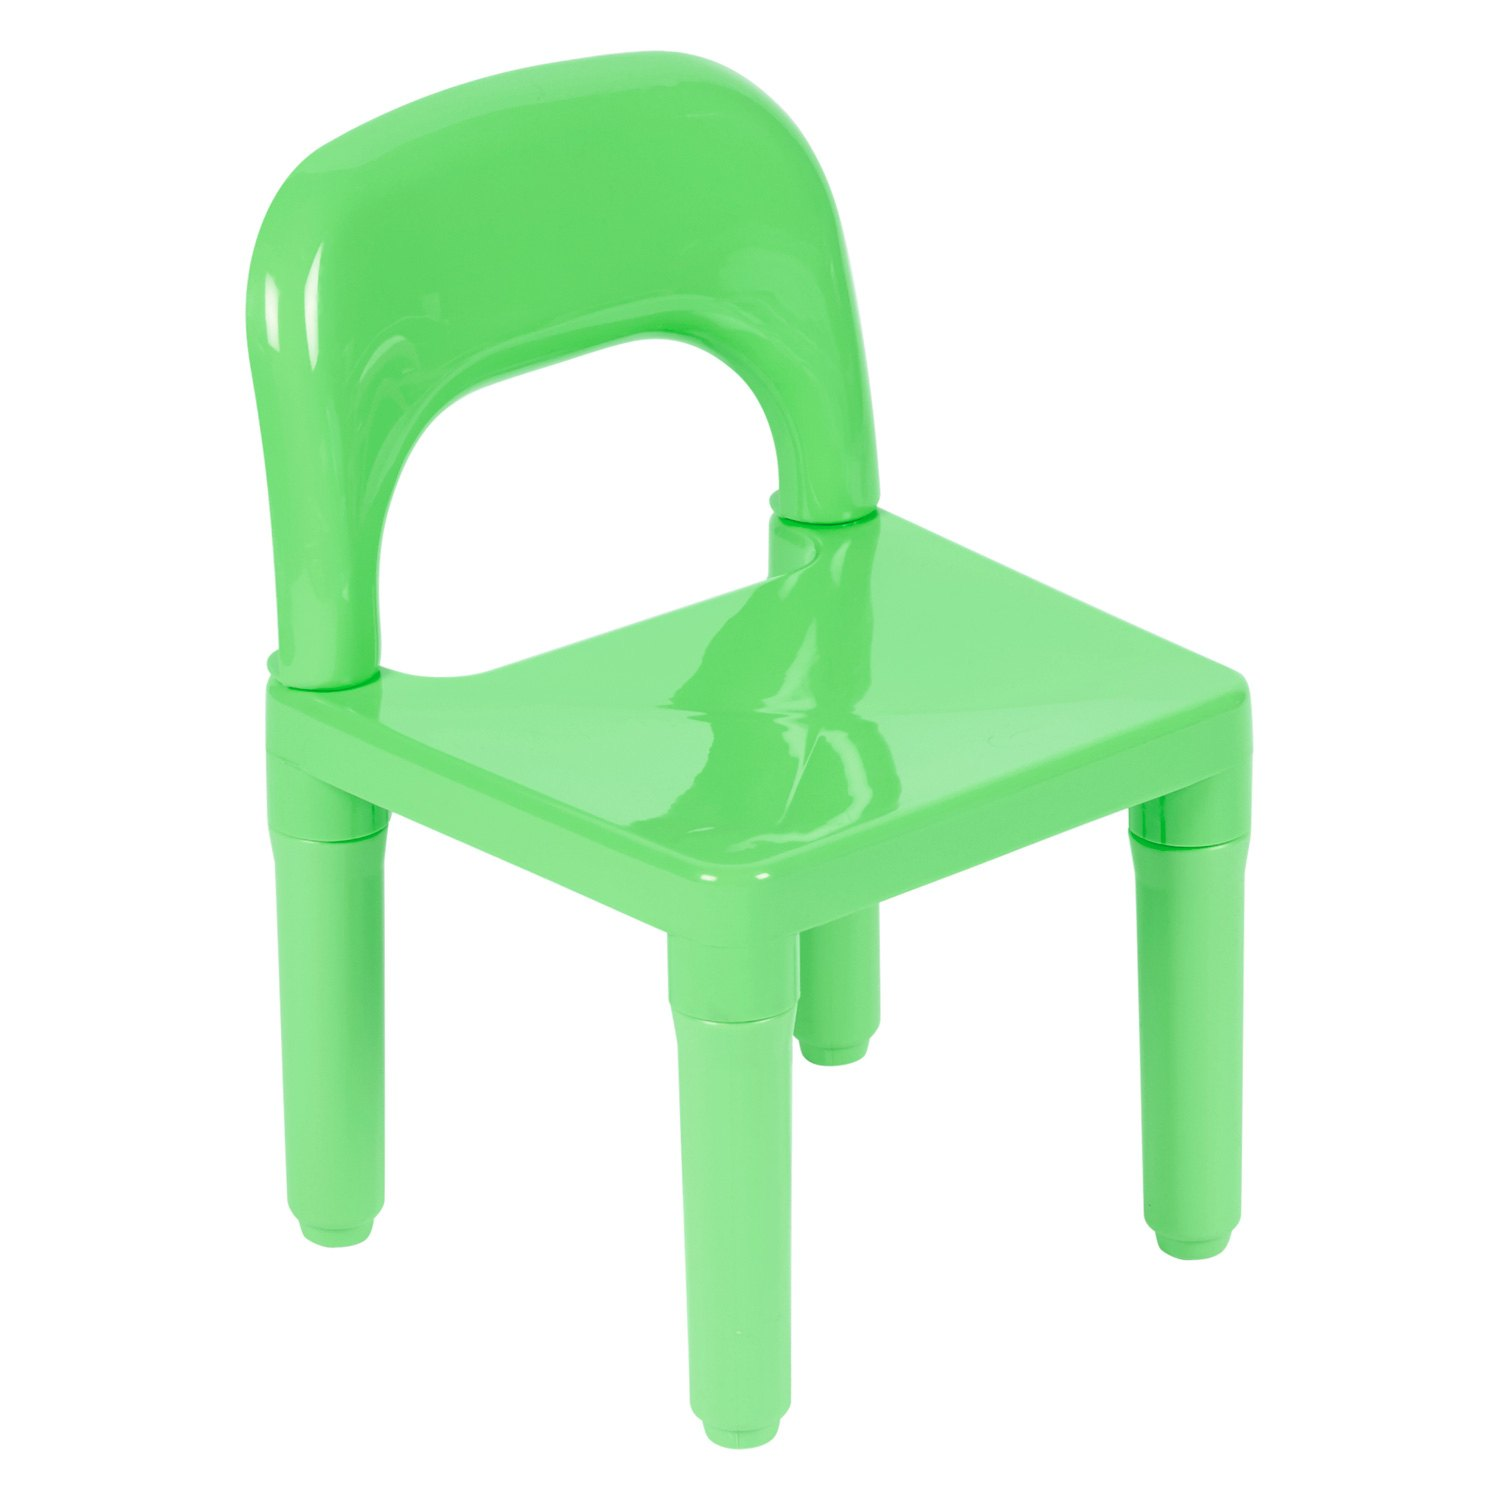 OxGord PLTC 01 Kids Table and Chairs Play Set